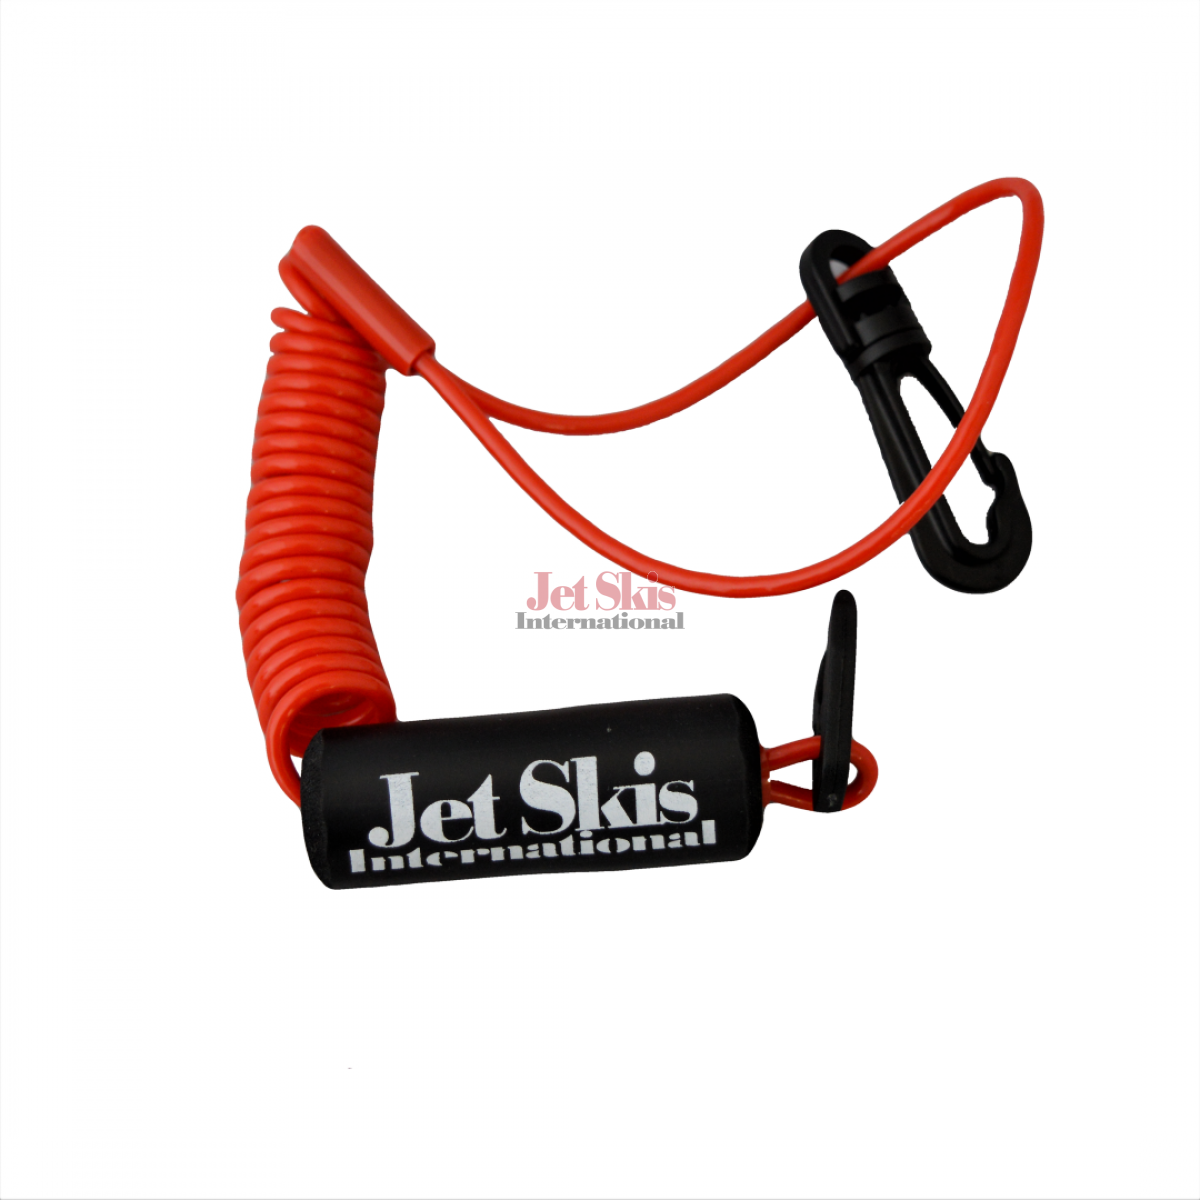 Kawasaki Jetski Safety Lanyard Emergency Wire Replacement Jet Skis 1100 Stx Ski Wiring Diagram Red Honda Floating